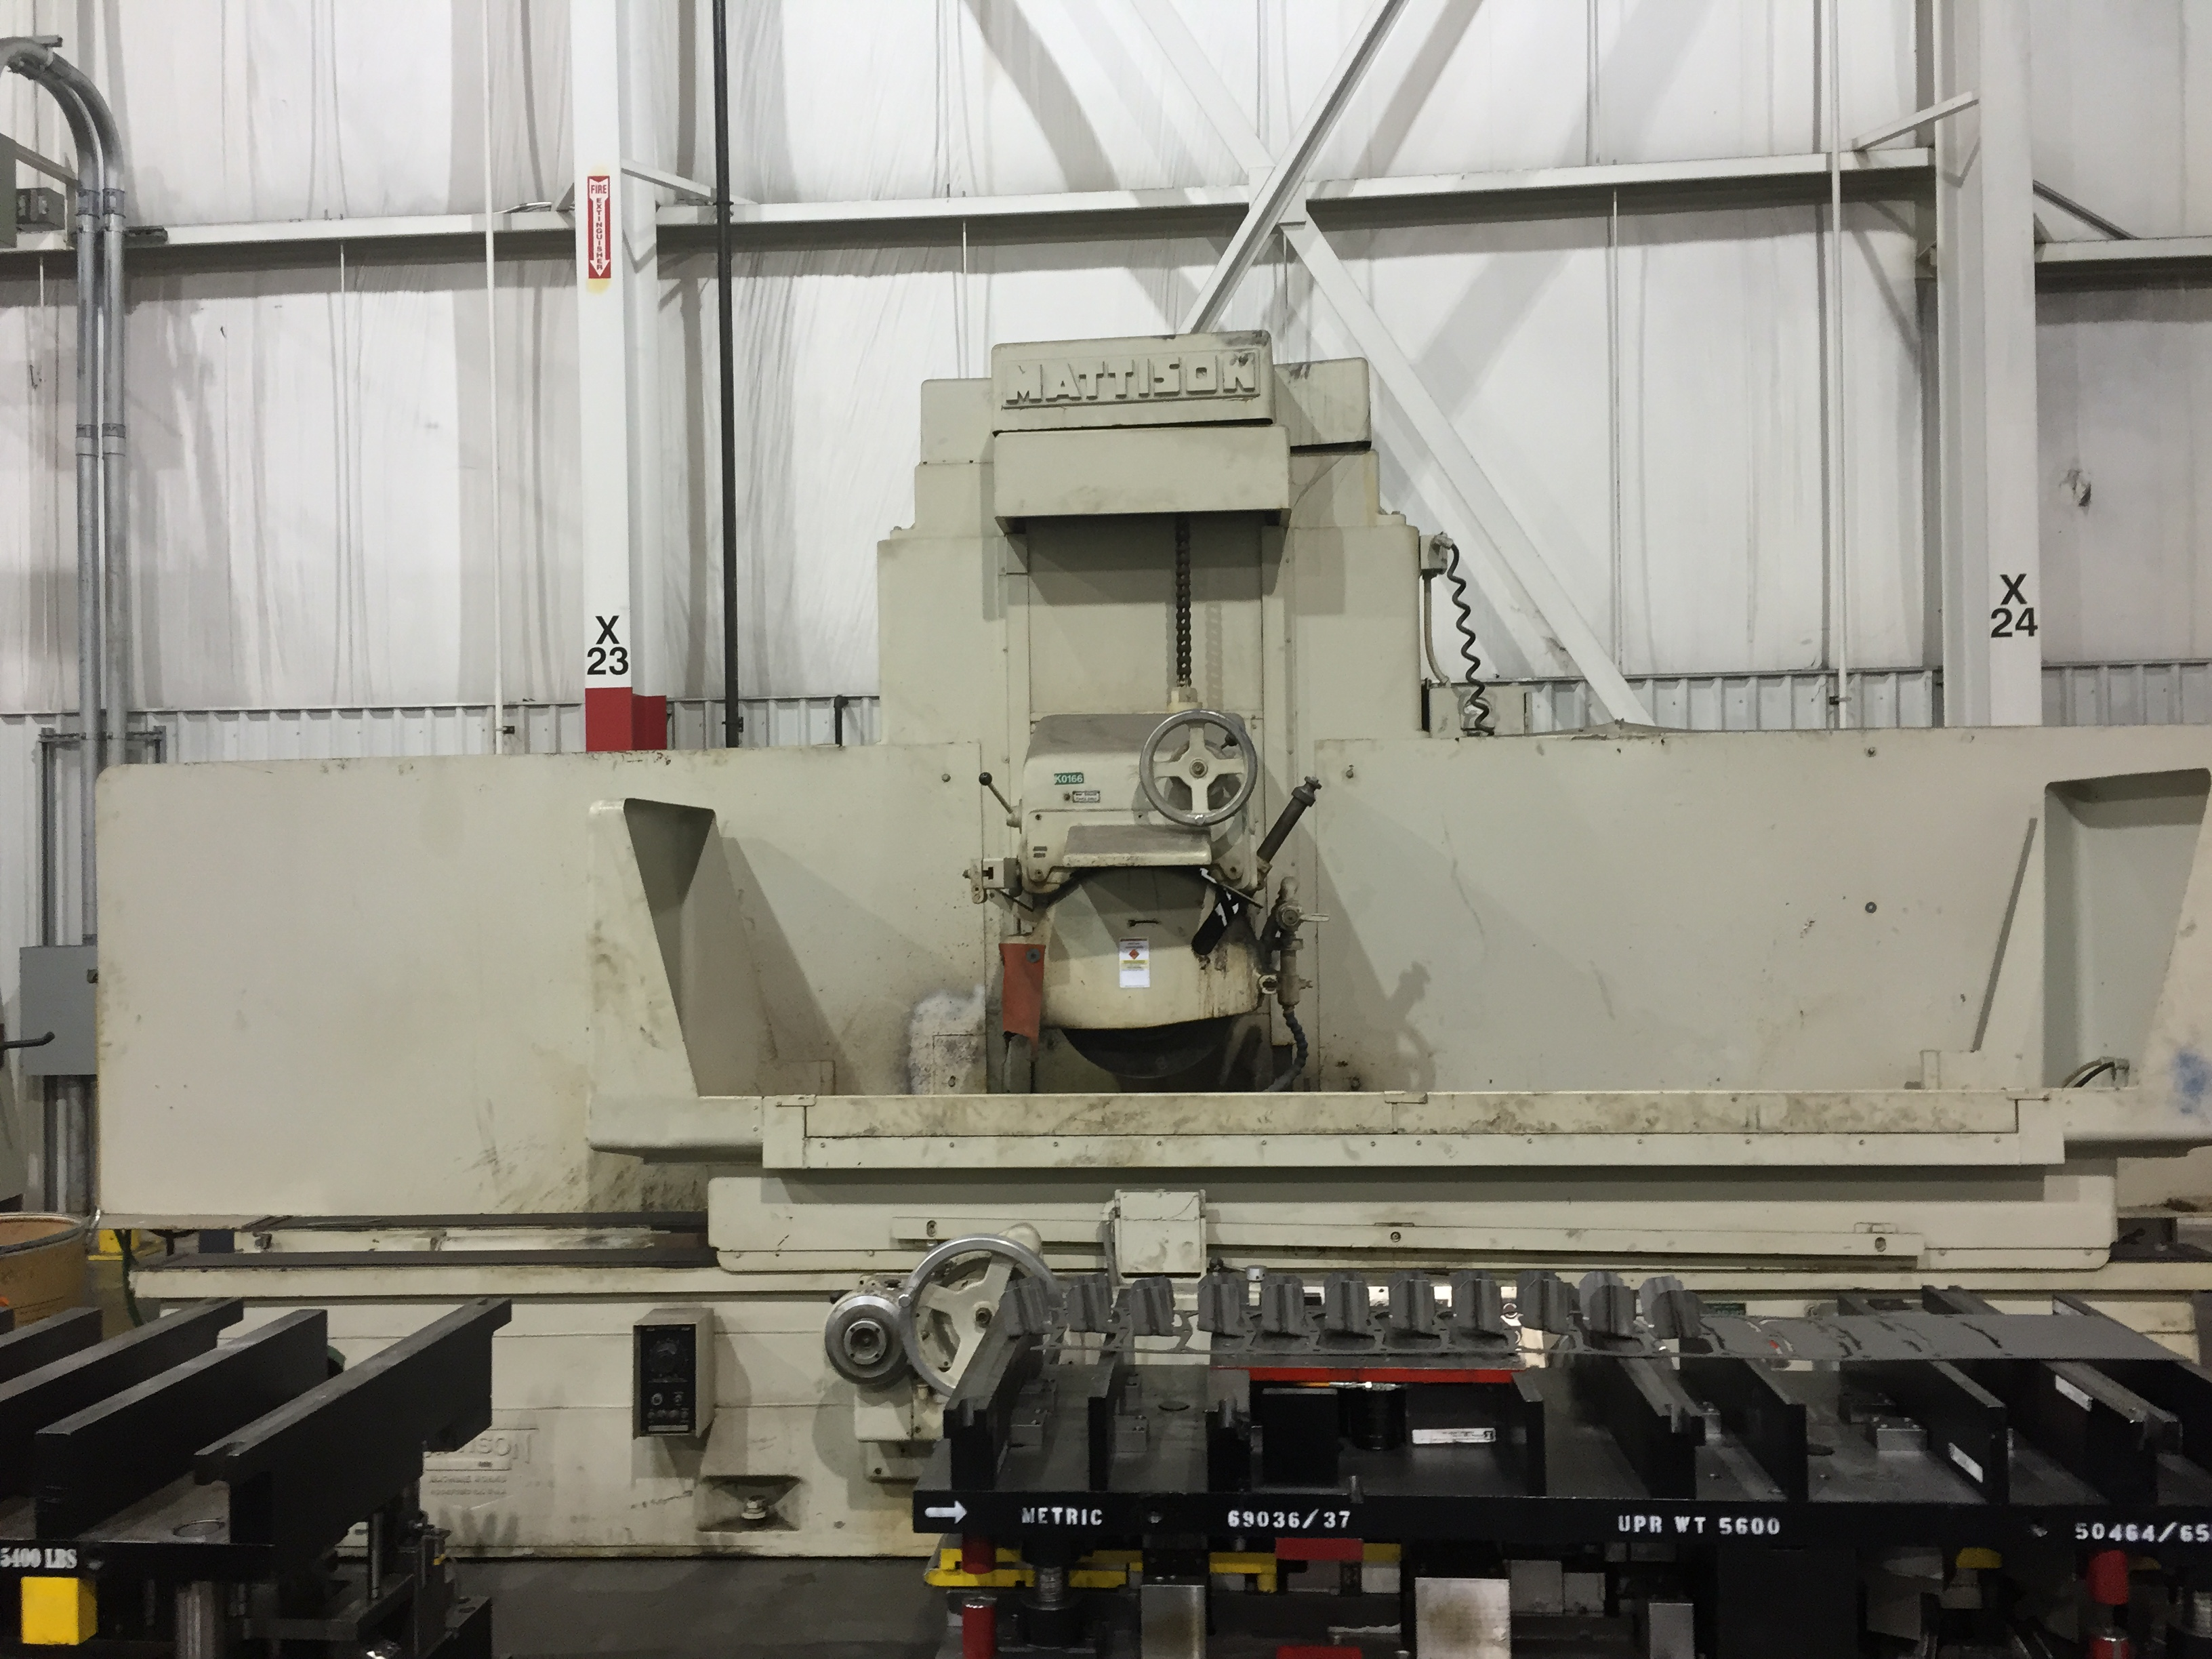 "24"" X 72"" MATTISON HYDRAULIC SURFACE GRINDER, 24"" X 30"" X 72"" CAPACITY, MAGNETIC CHUCK, BUILT IN COOLANT, 1969"